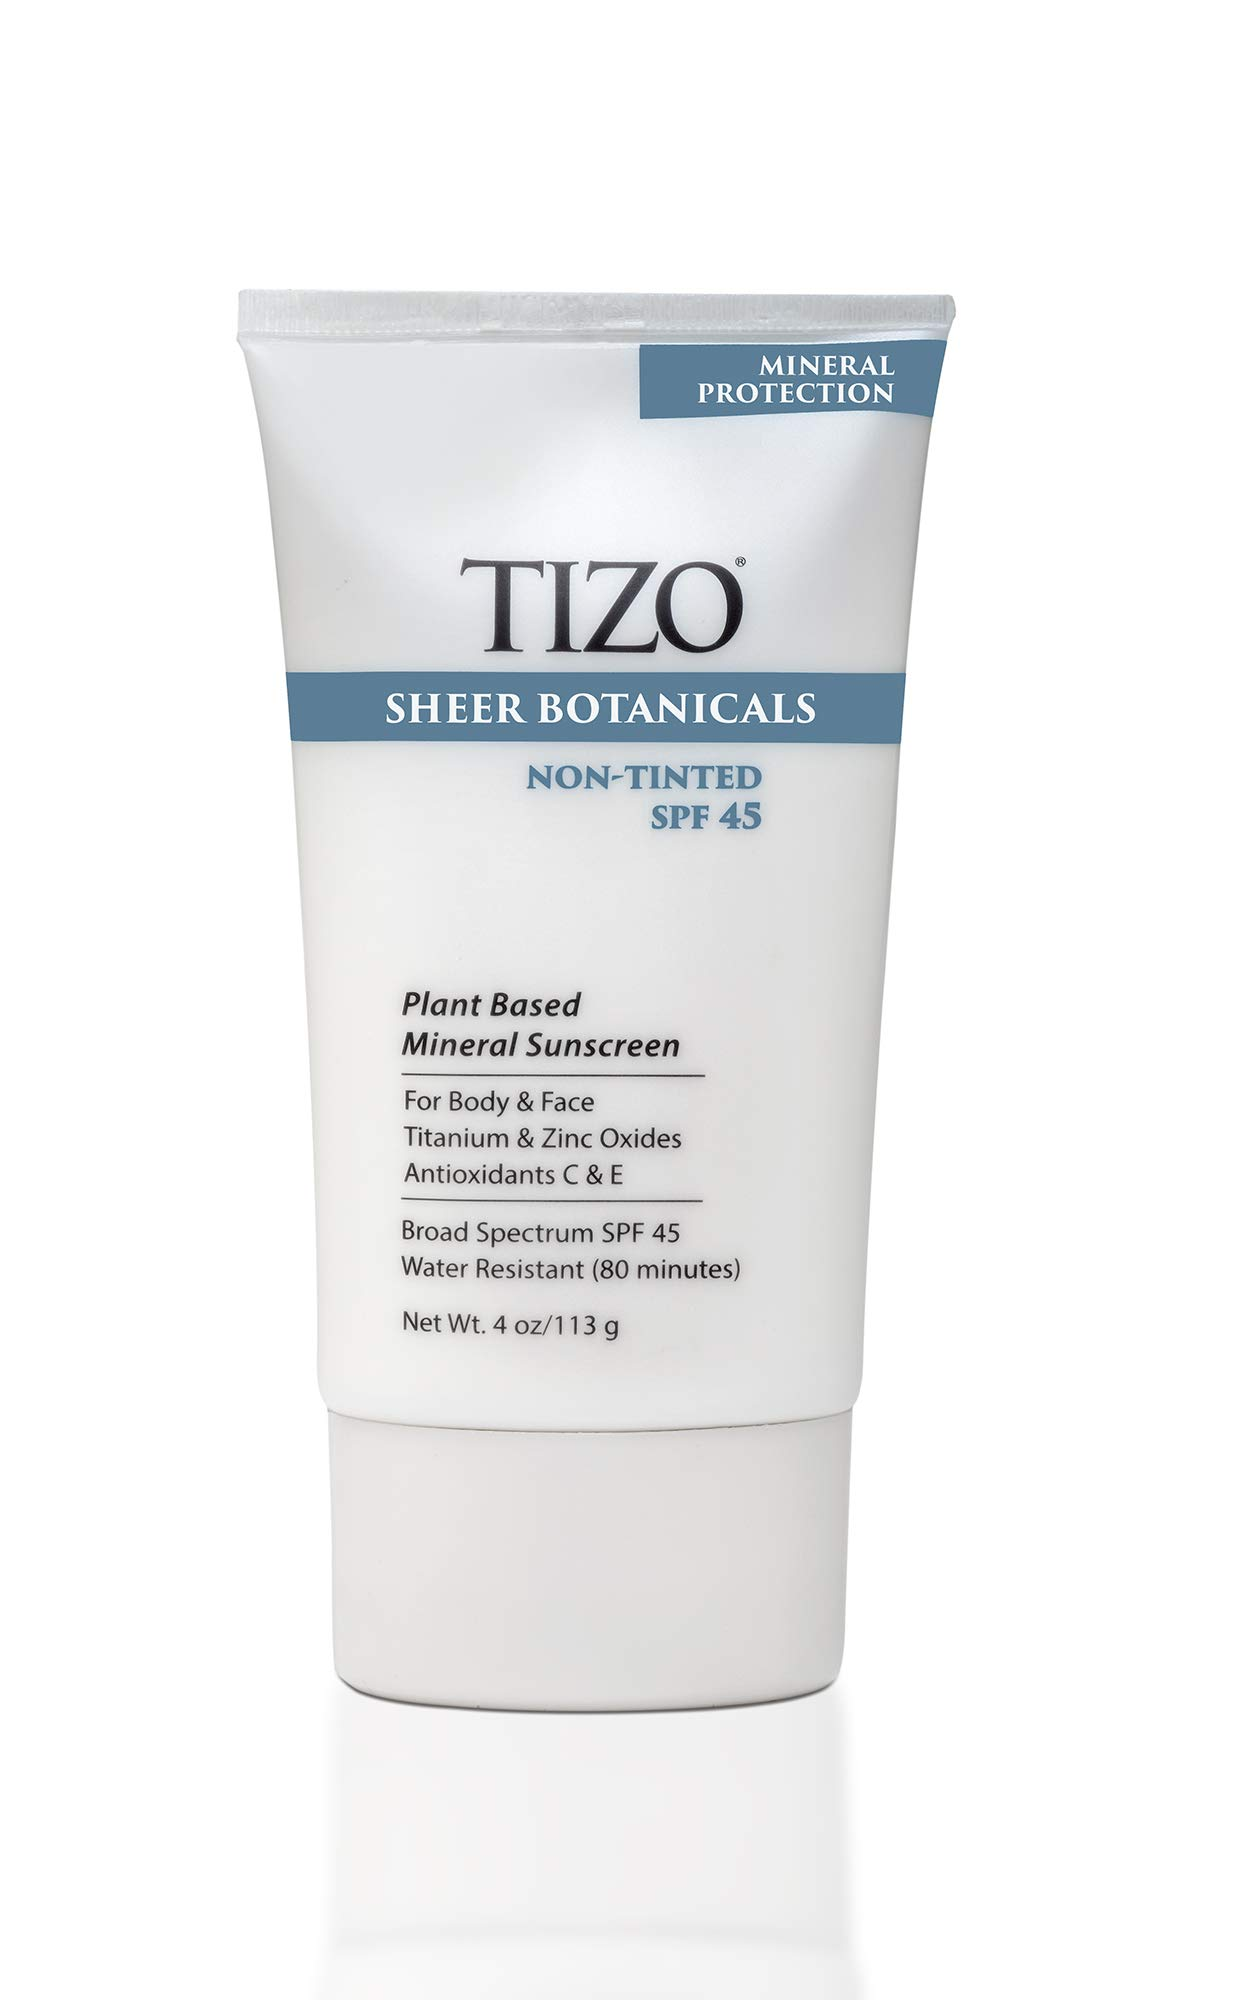 TIZO Sheer Botanicals Mineral Sunscreen for Face and Body with SPF 45, Non-Tinted, 4 Oz.